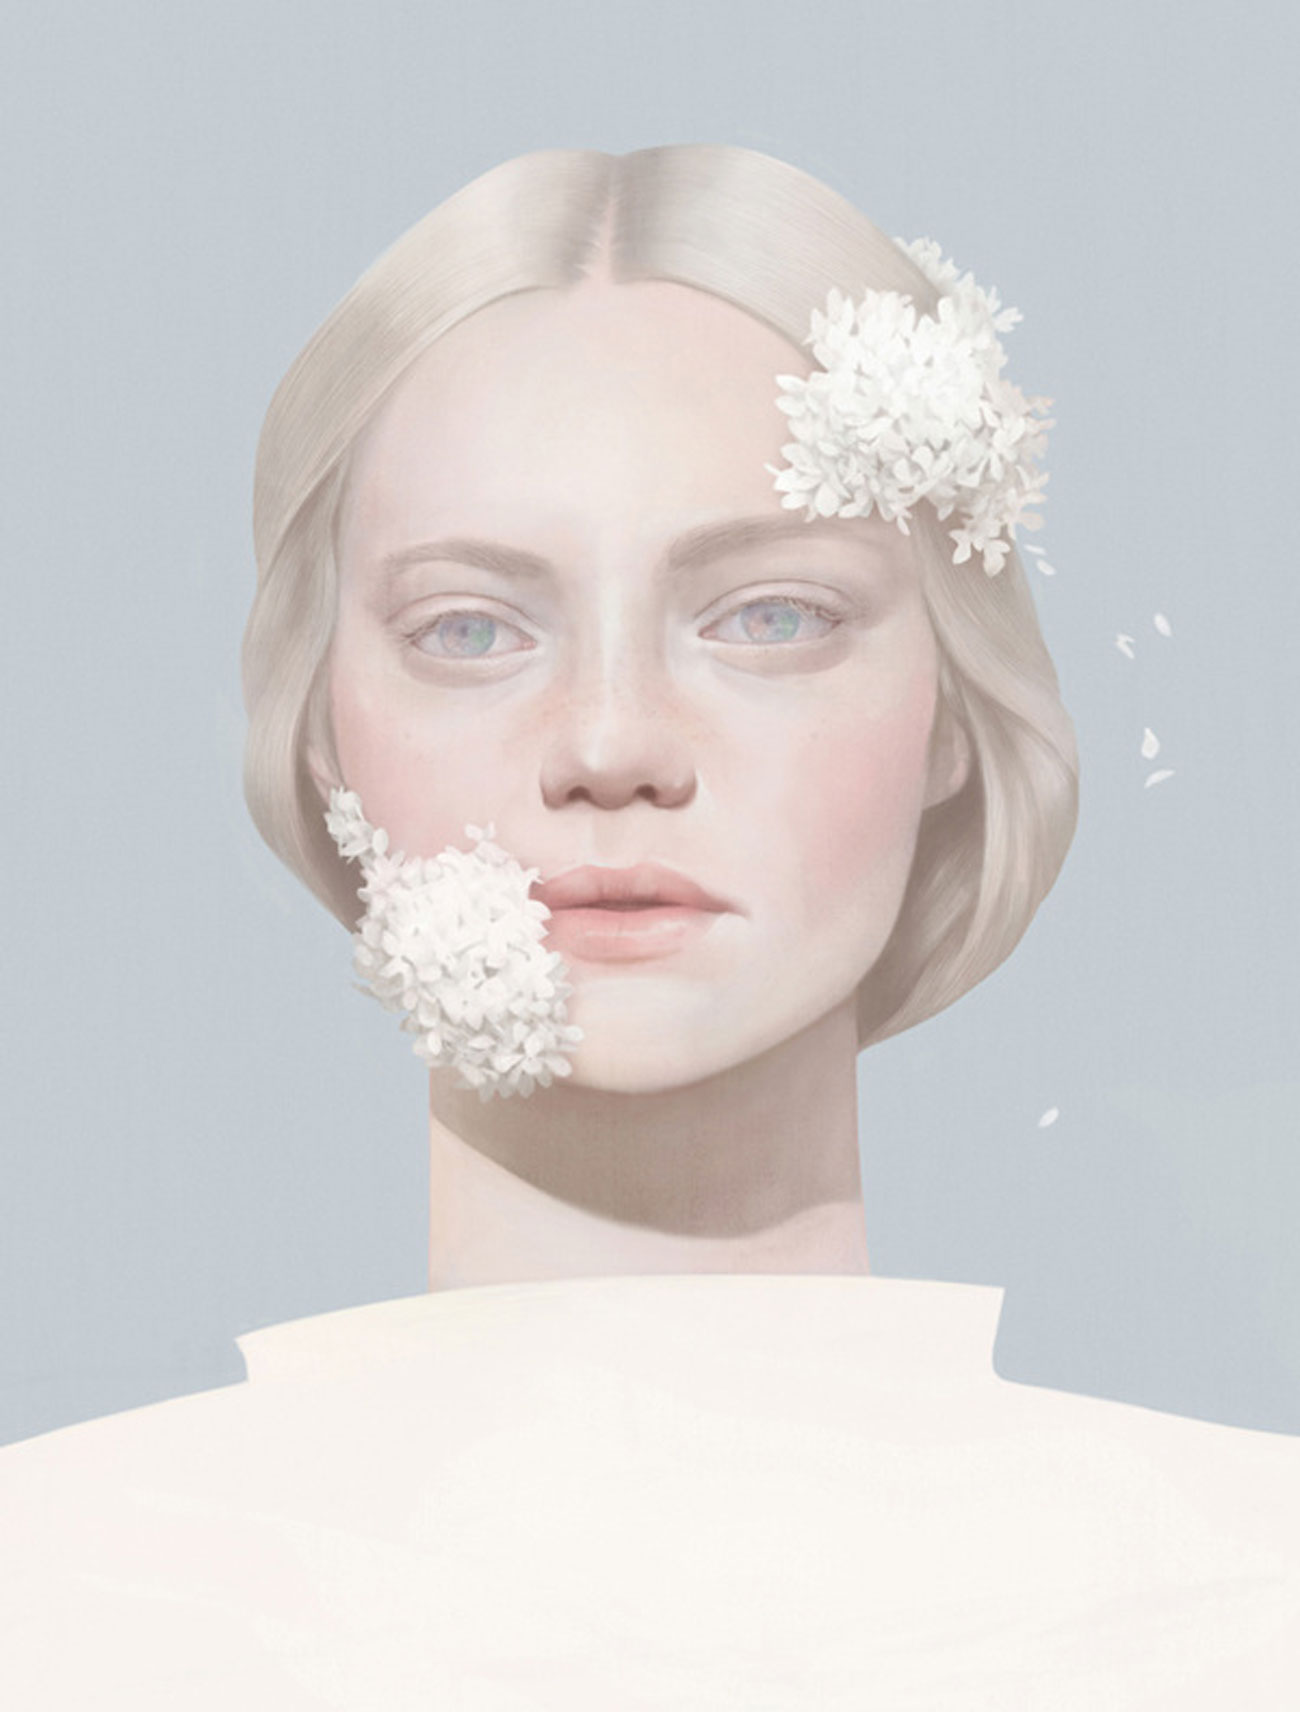 HSIAO-RON CHENG rosy